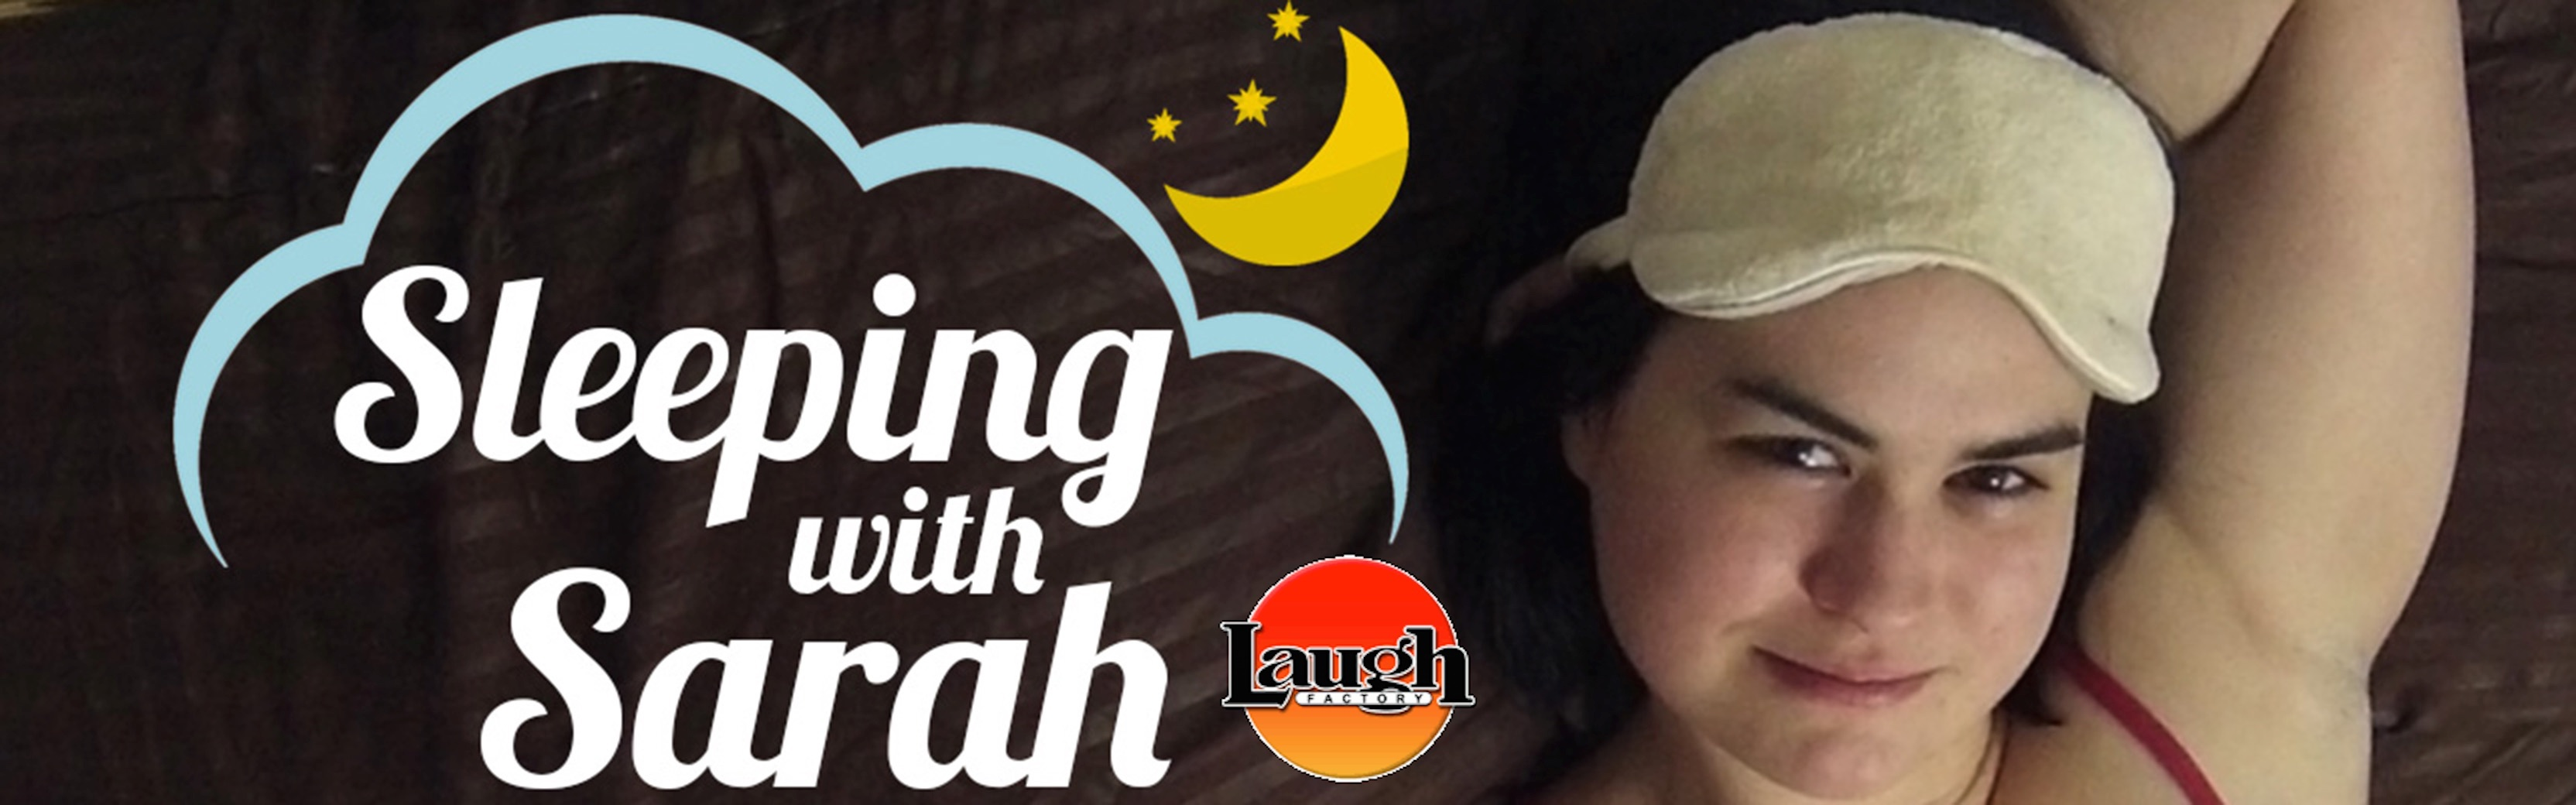 Sleeping with Sarah Podcast – Sarah Albritton Chicago Comedian